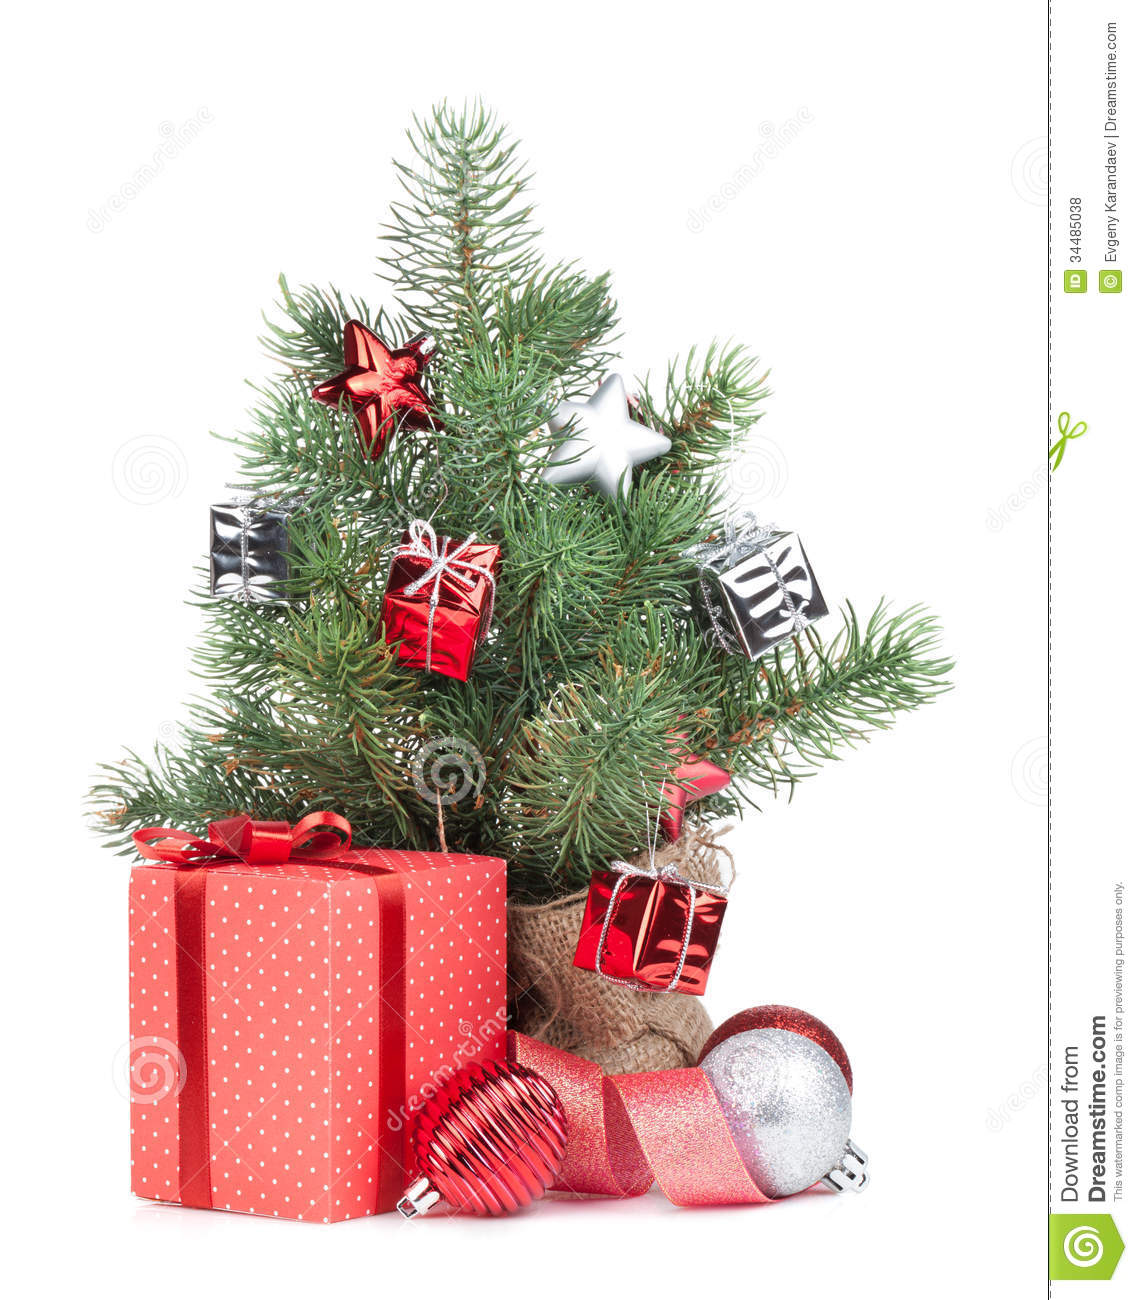 Small Christmas Tree With Decor And Gift Box Royalty Free Stock ...